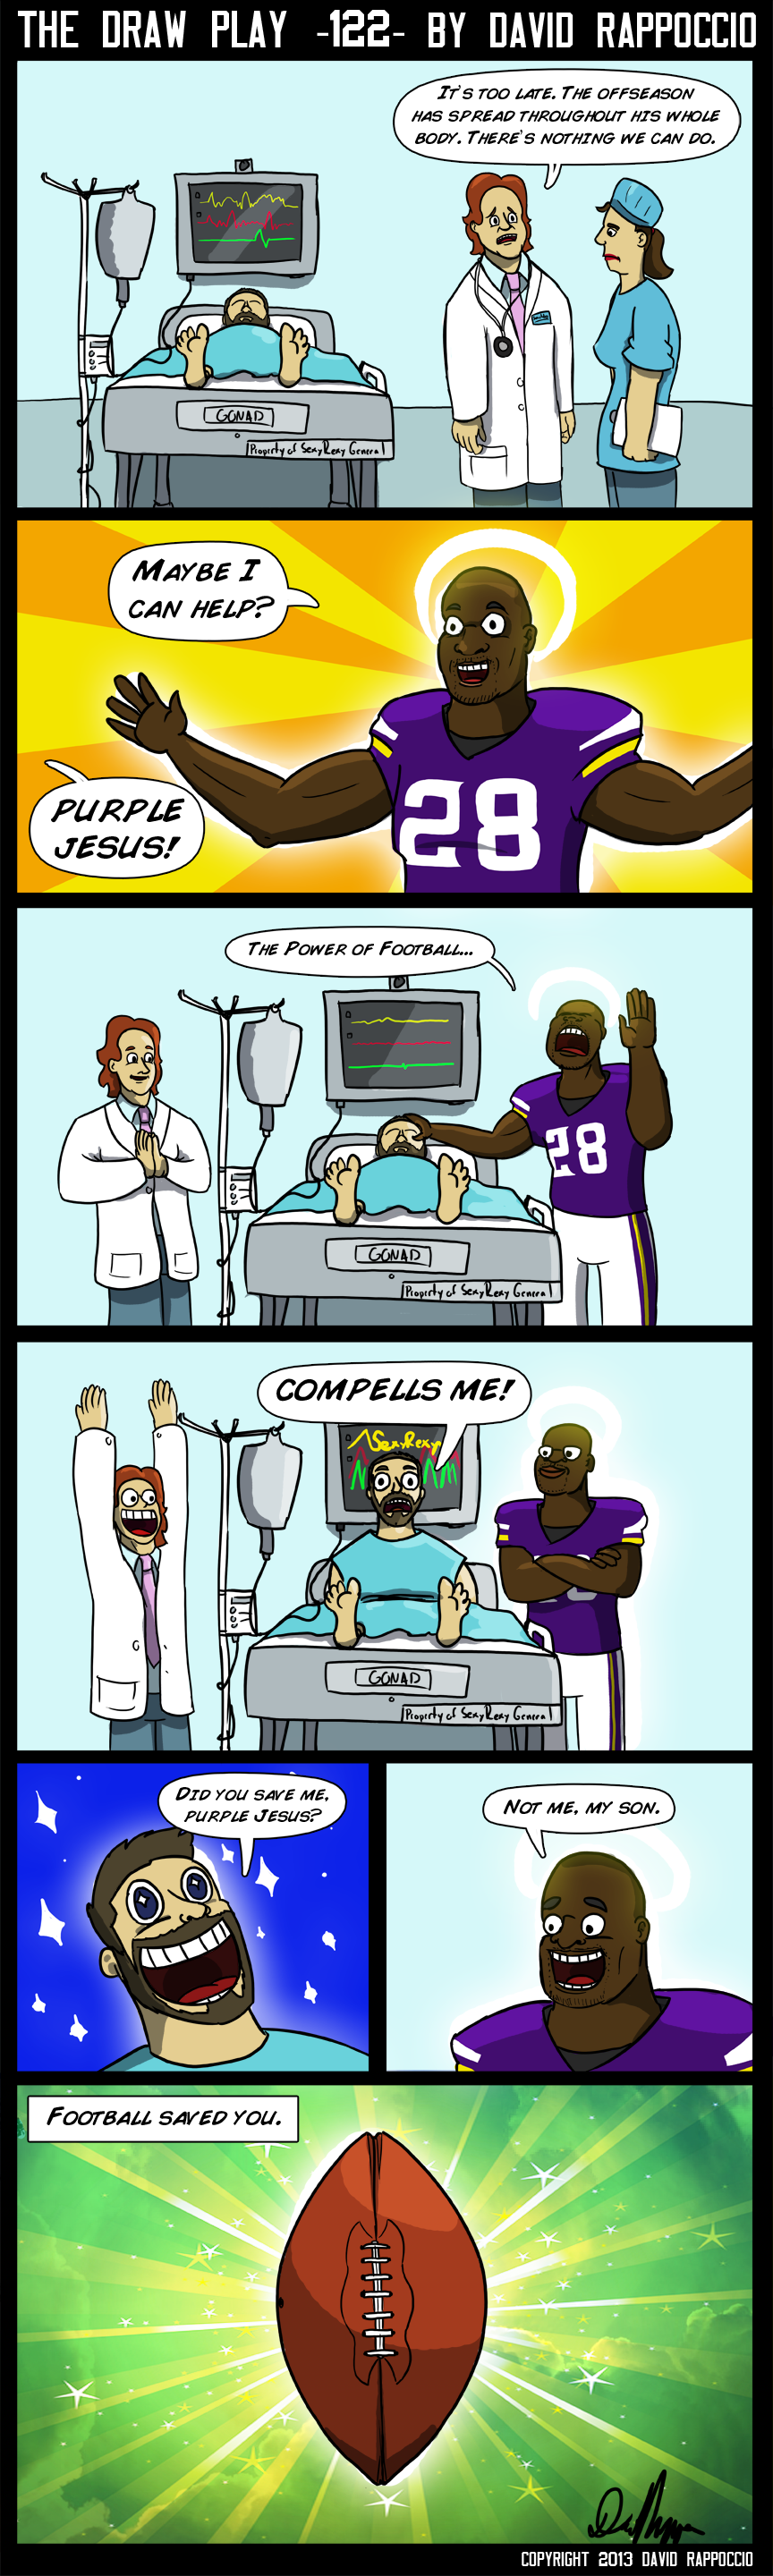 Modern Medicine is powerless in the face of Football.